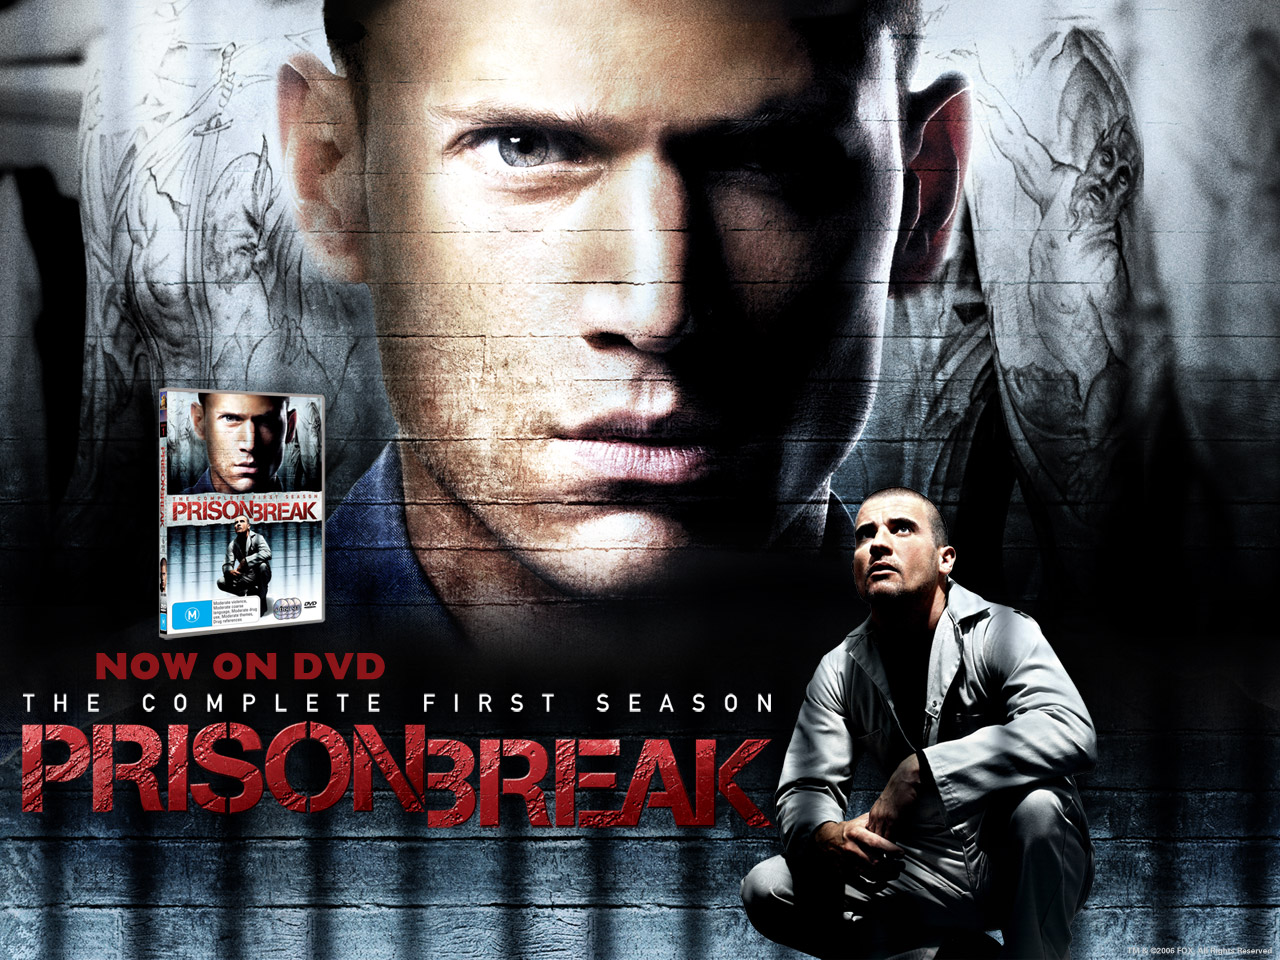 kak-konchilsya-prison-break